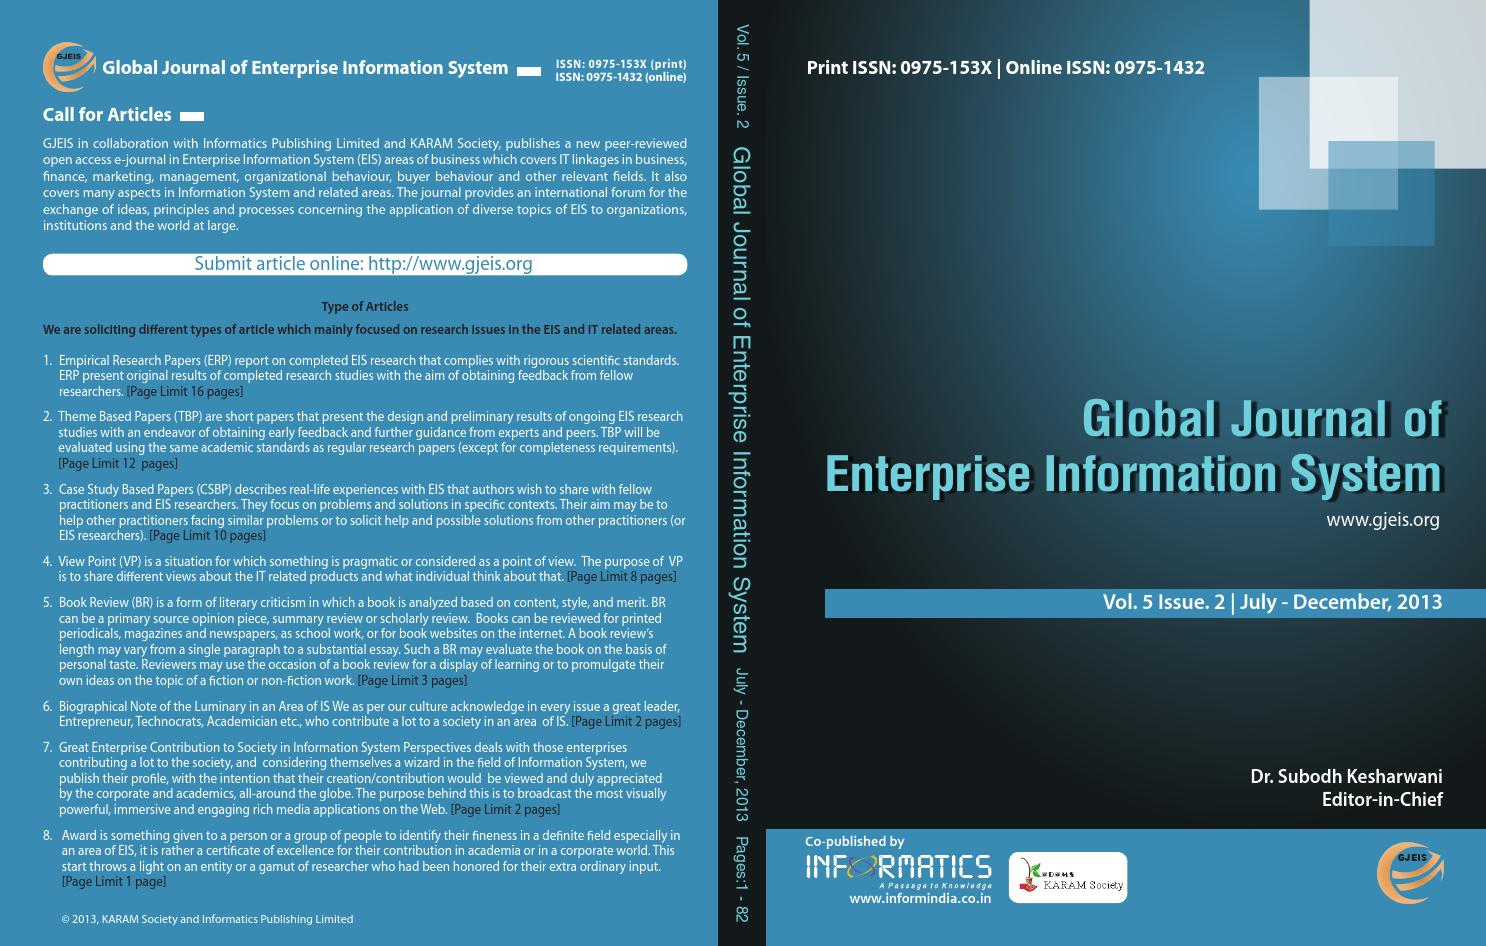 Volume-5, Issue-2 July-Dec 2013 by Global Journal of Enterprise ...